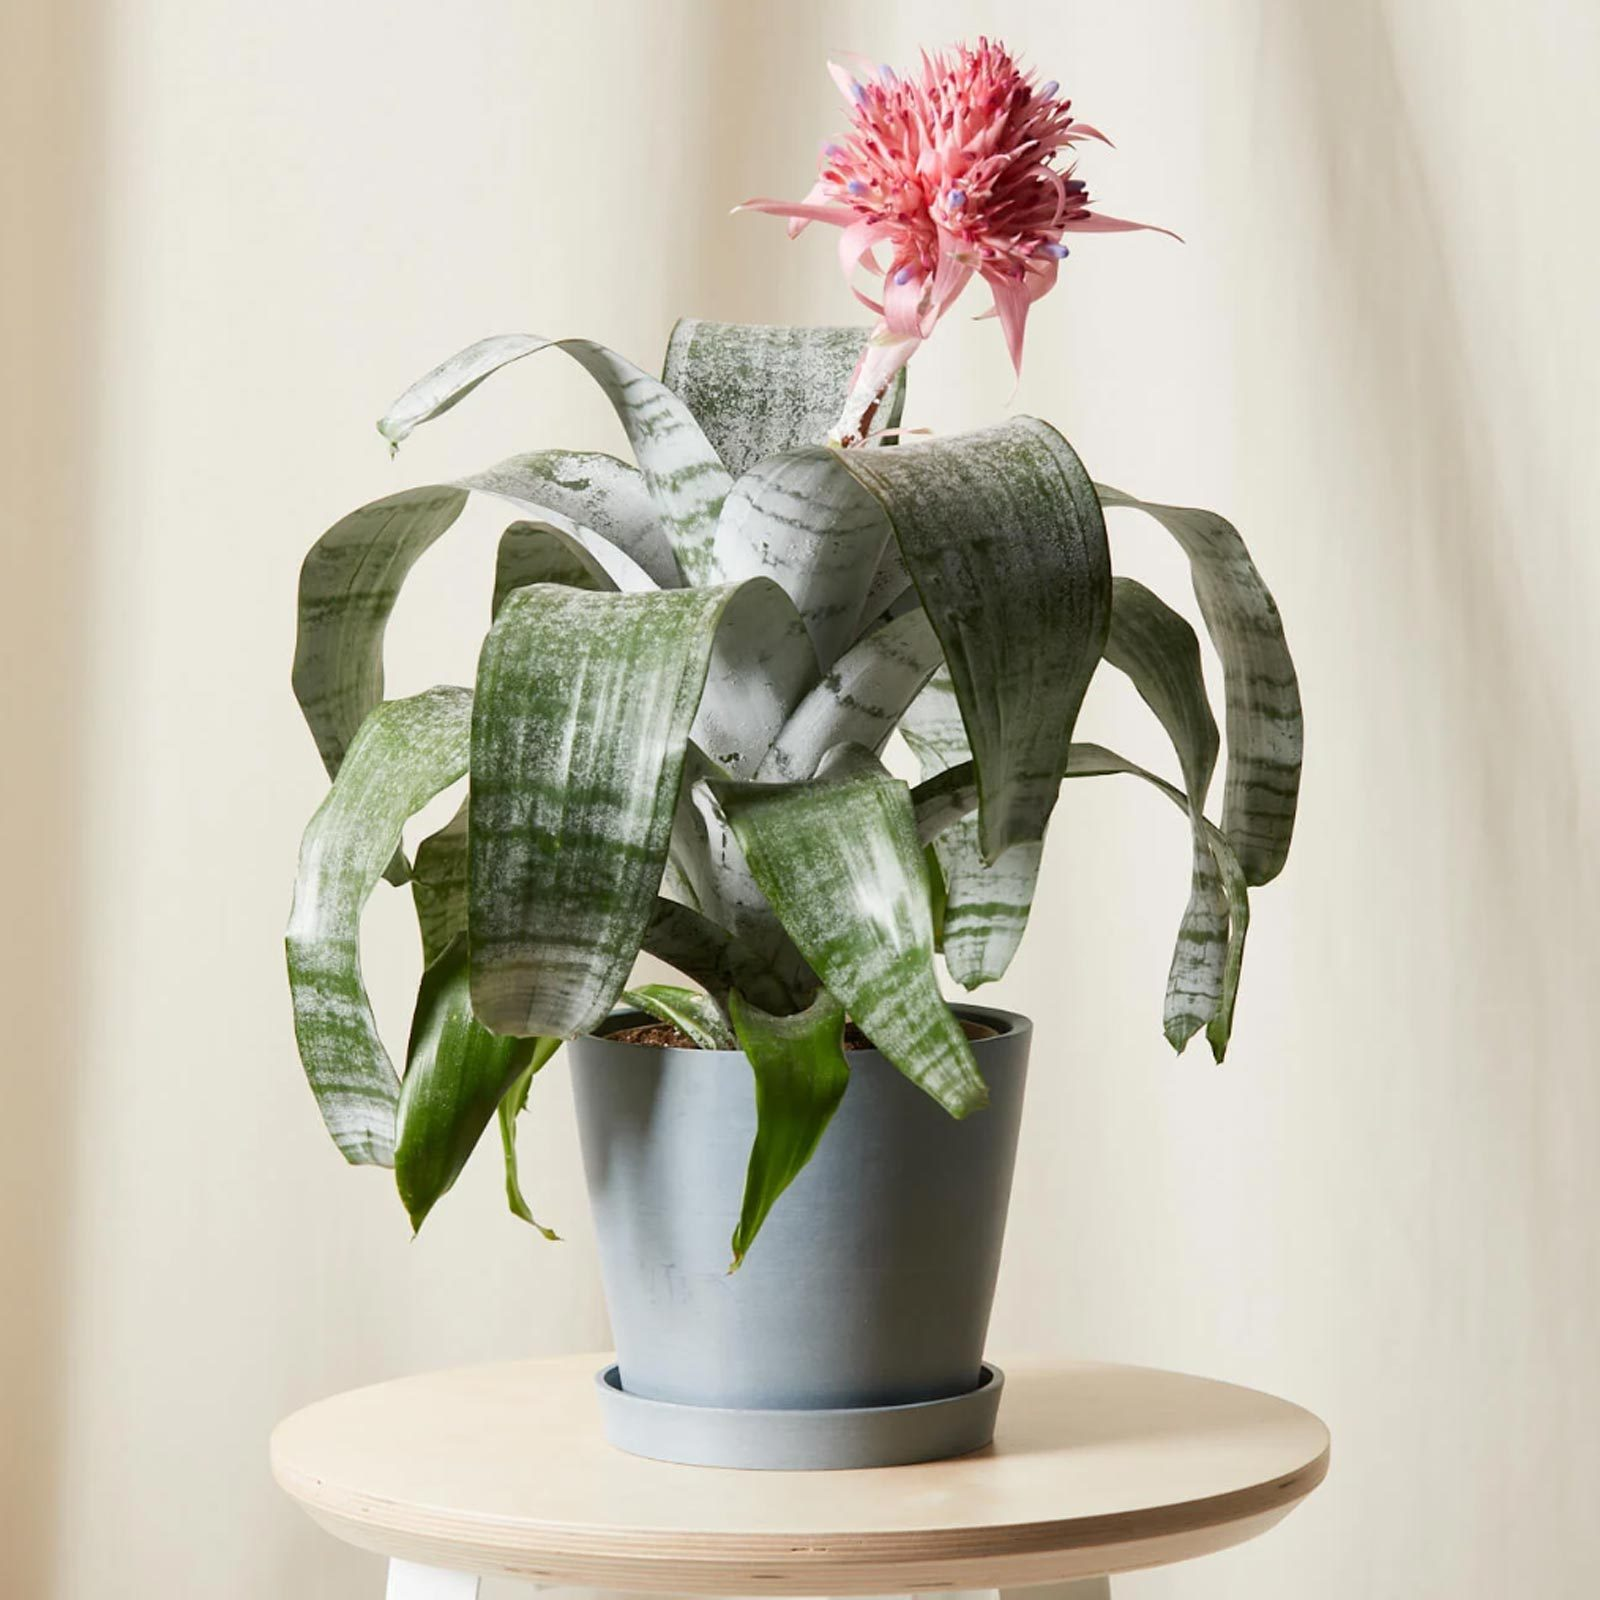 For the classic mom: Bloomscape Bromeliad Aechmea Pink Plant